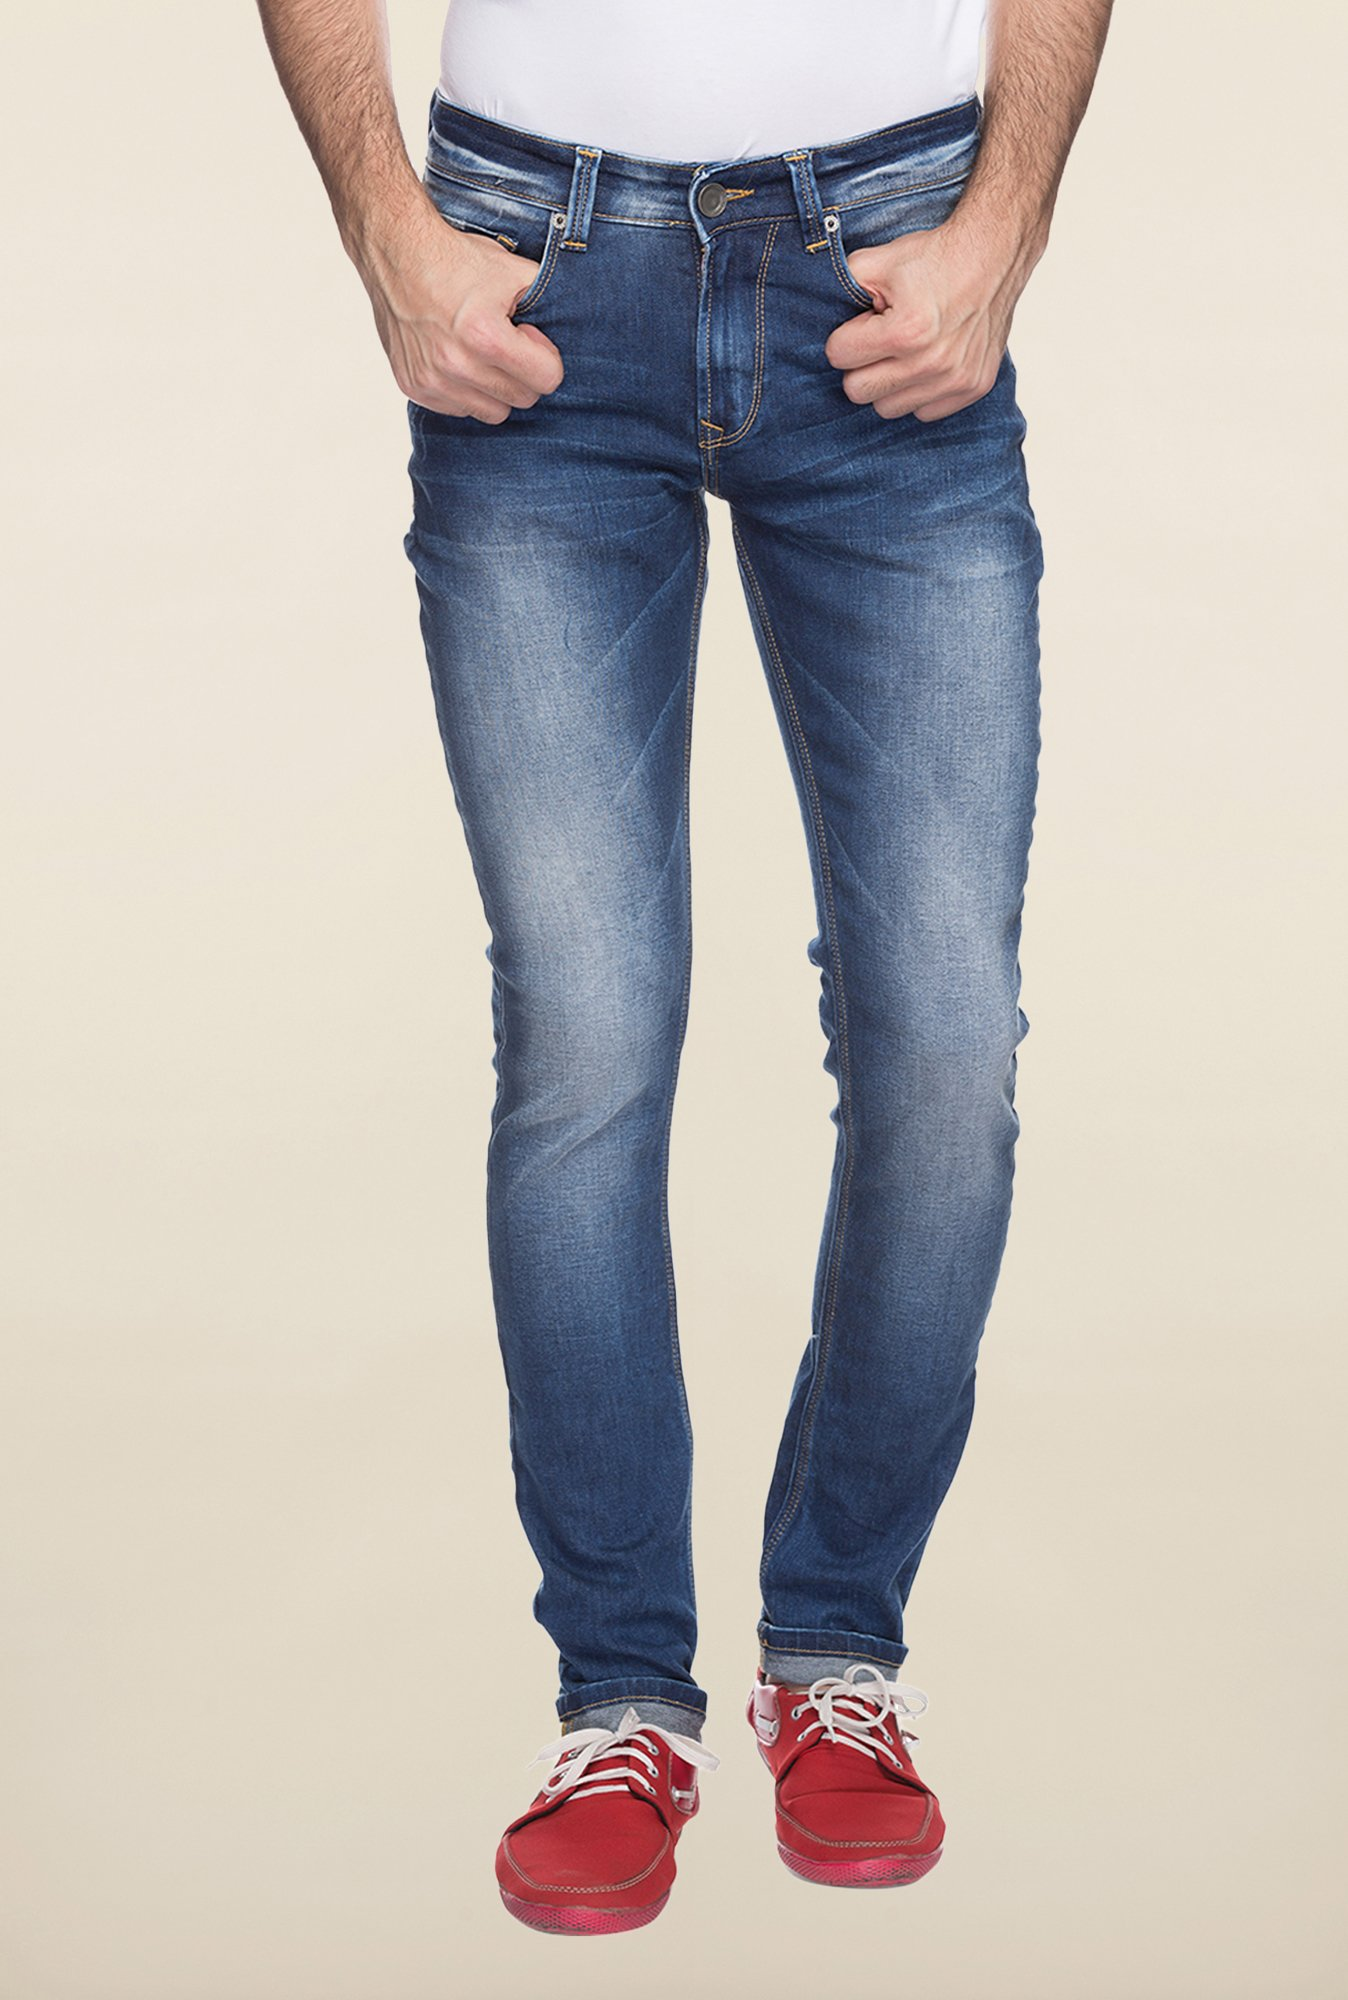 Spykar Blue Denim Slim Fit Jeans